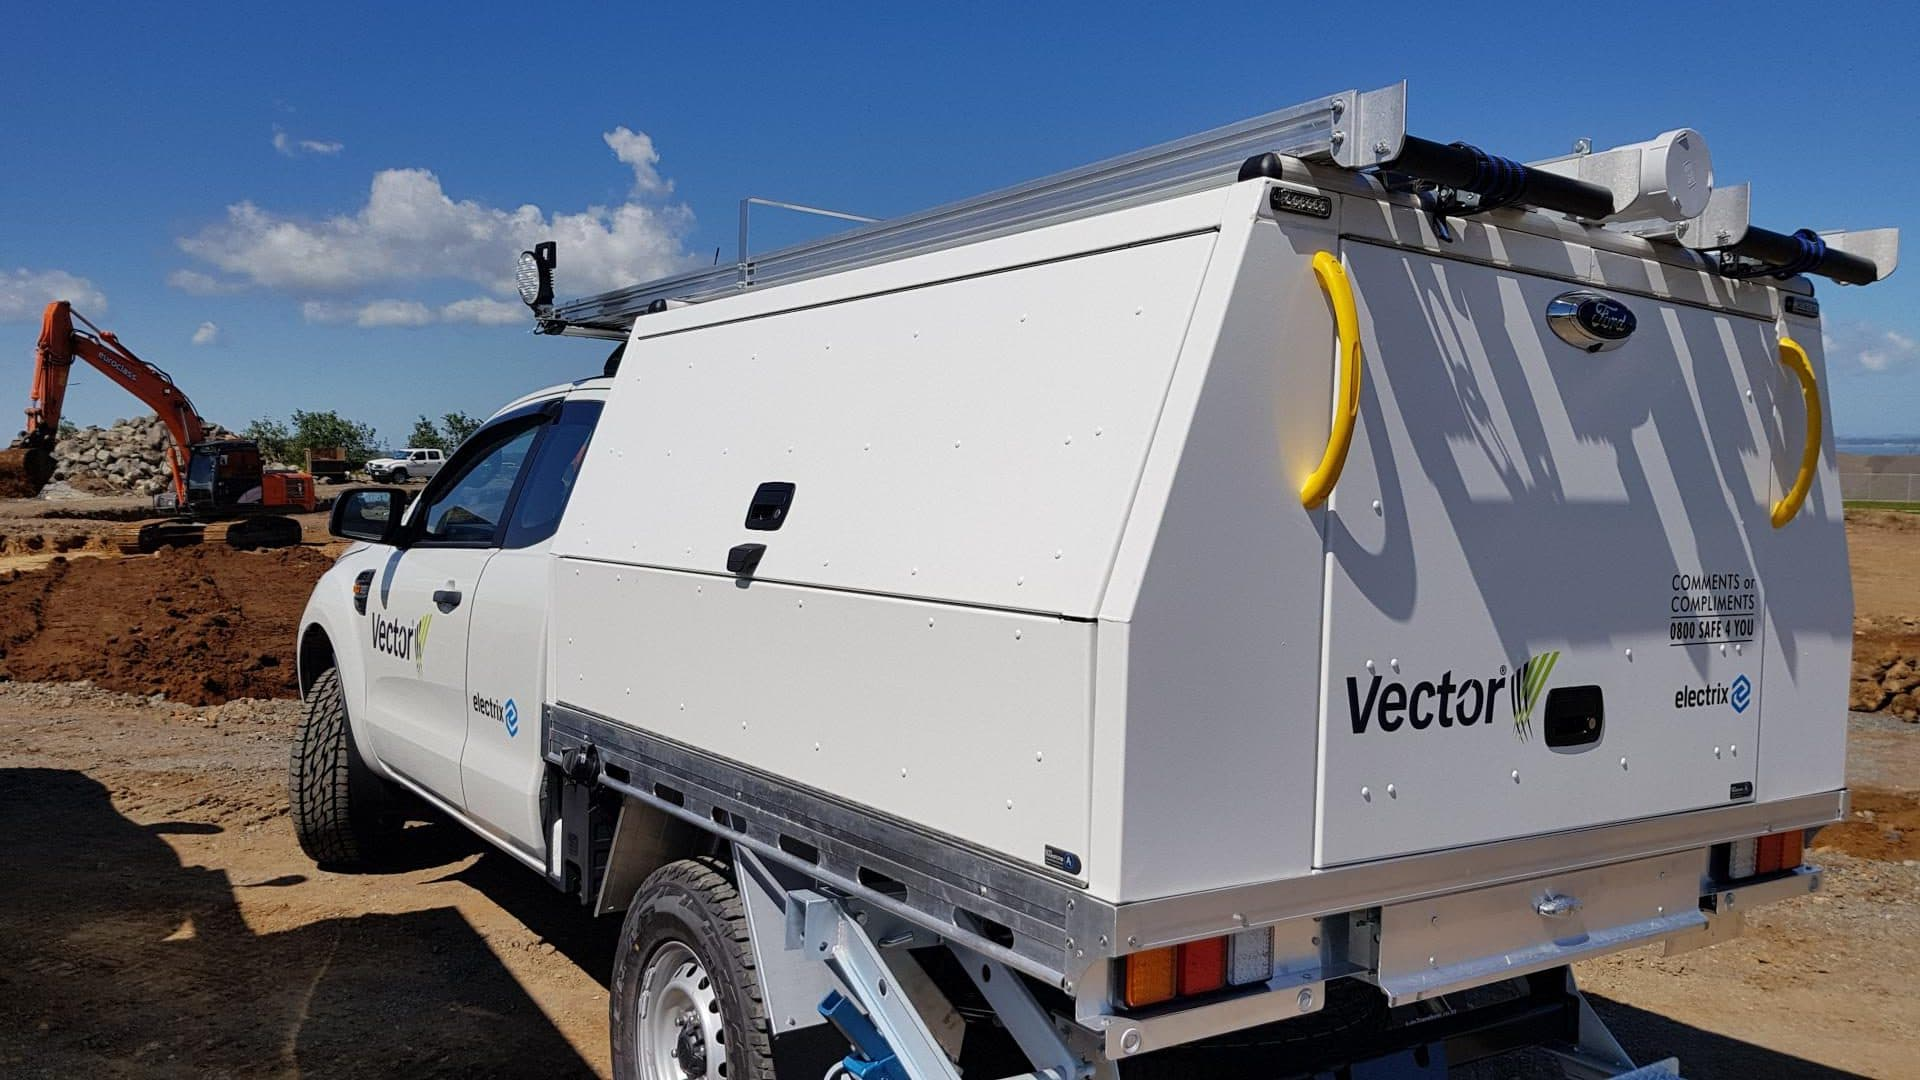 Professional service body for commercial ute fleet